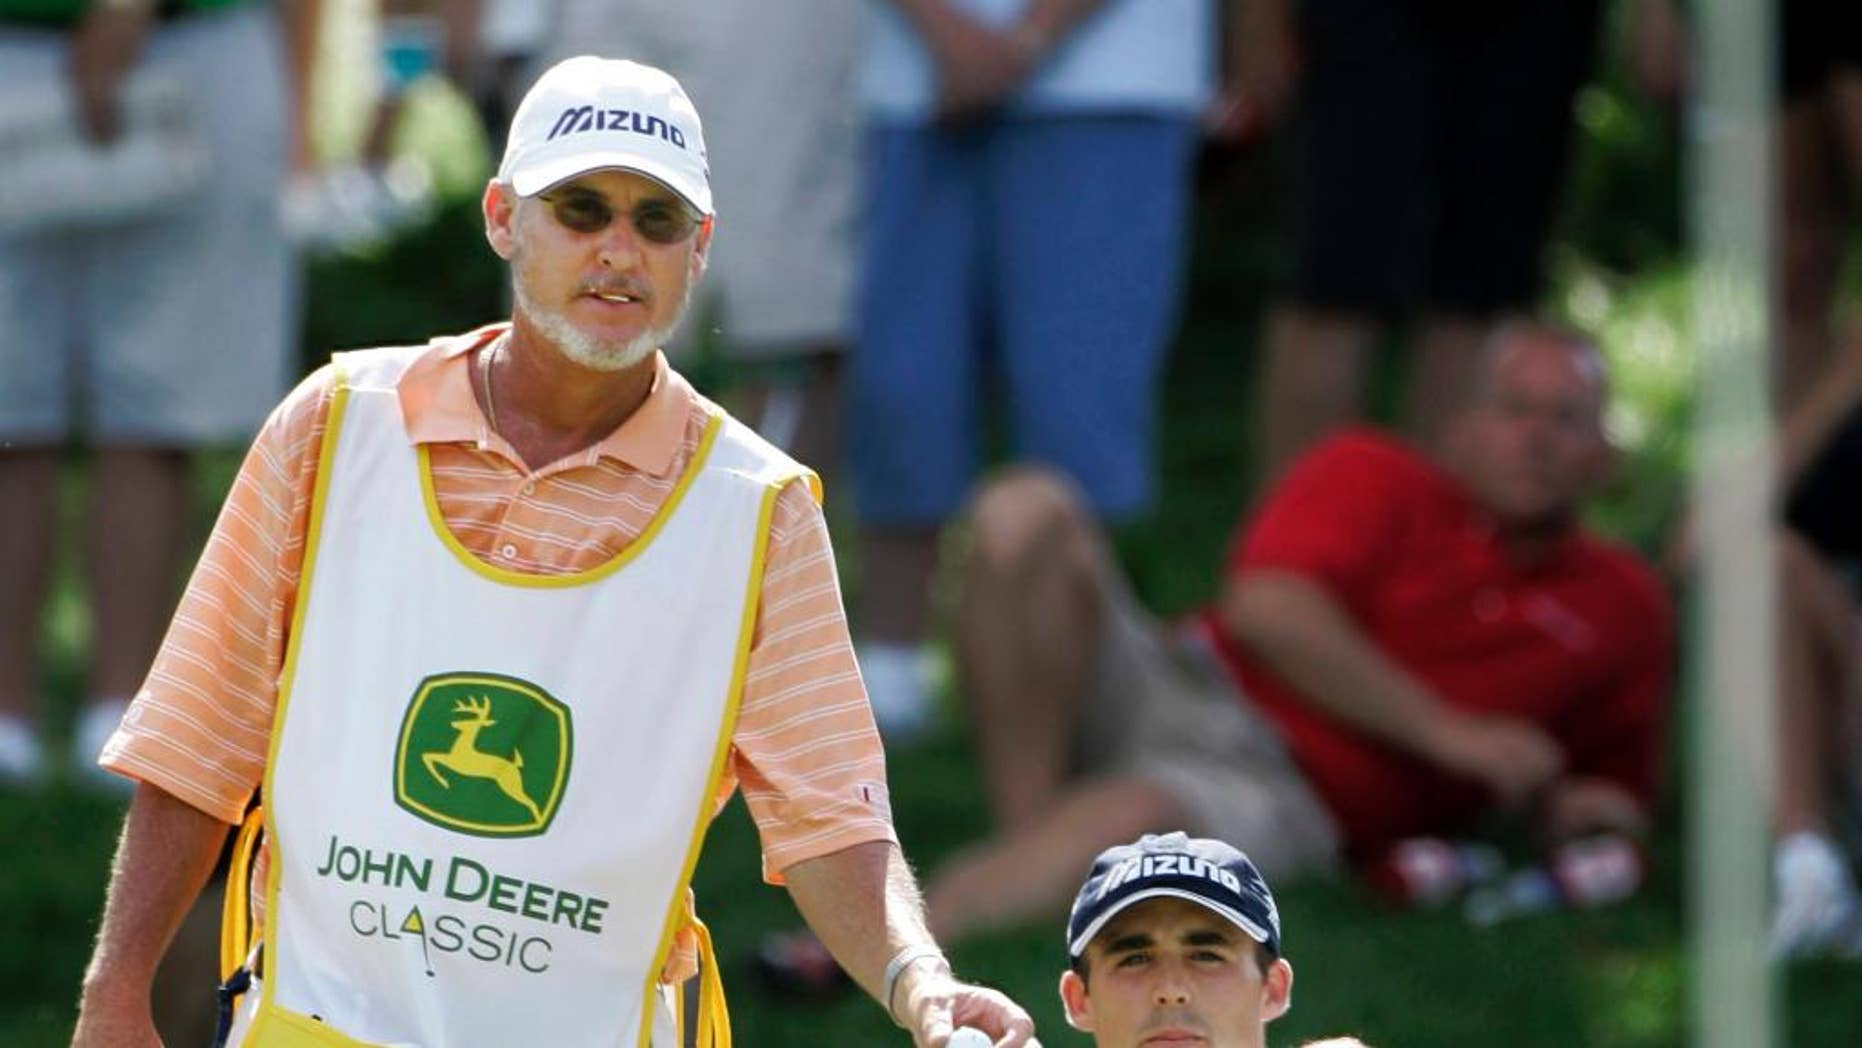 FILE - In this July 15, 2007, file photo, golfer Jonathan Byrd, right, shows caddie Mike Hicks the contour of the 17th green during John Deere Classic golf tournament at the TPC Deere Run golf course in Silvis, Ill. A group of PGA Tour caddies has filed a class-action lawsuit Tuesday, Feb. 3, 2015, in northern California, demanding that the tour compensate them for wearing bibs.  Hicks was named as the two class representatives. The other was Kenny Harms, who caddies for Kevin Na.   (AP Photo/Charles Rex Arbogast, File)